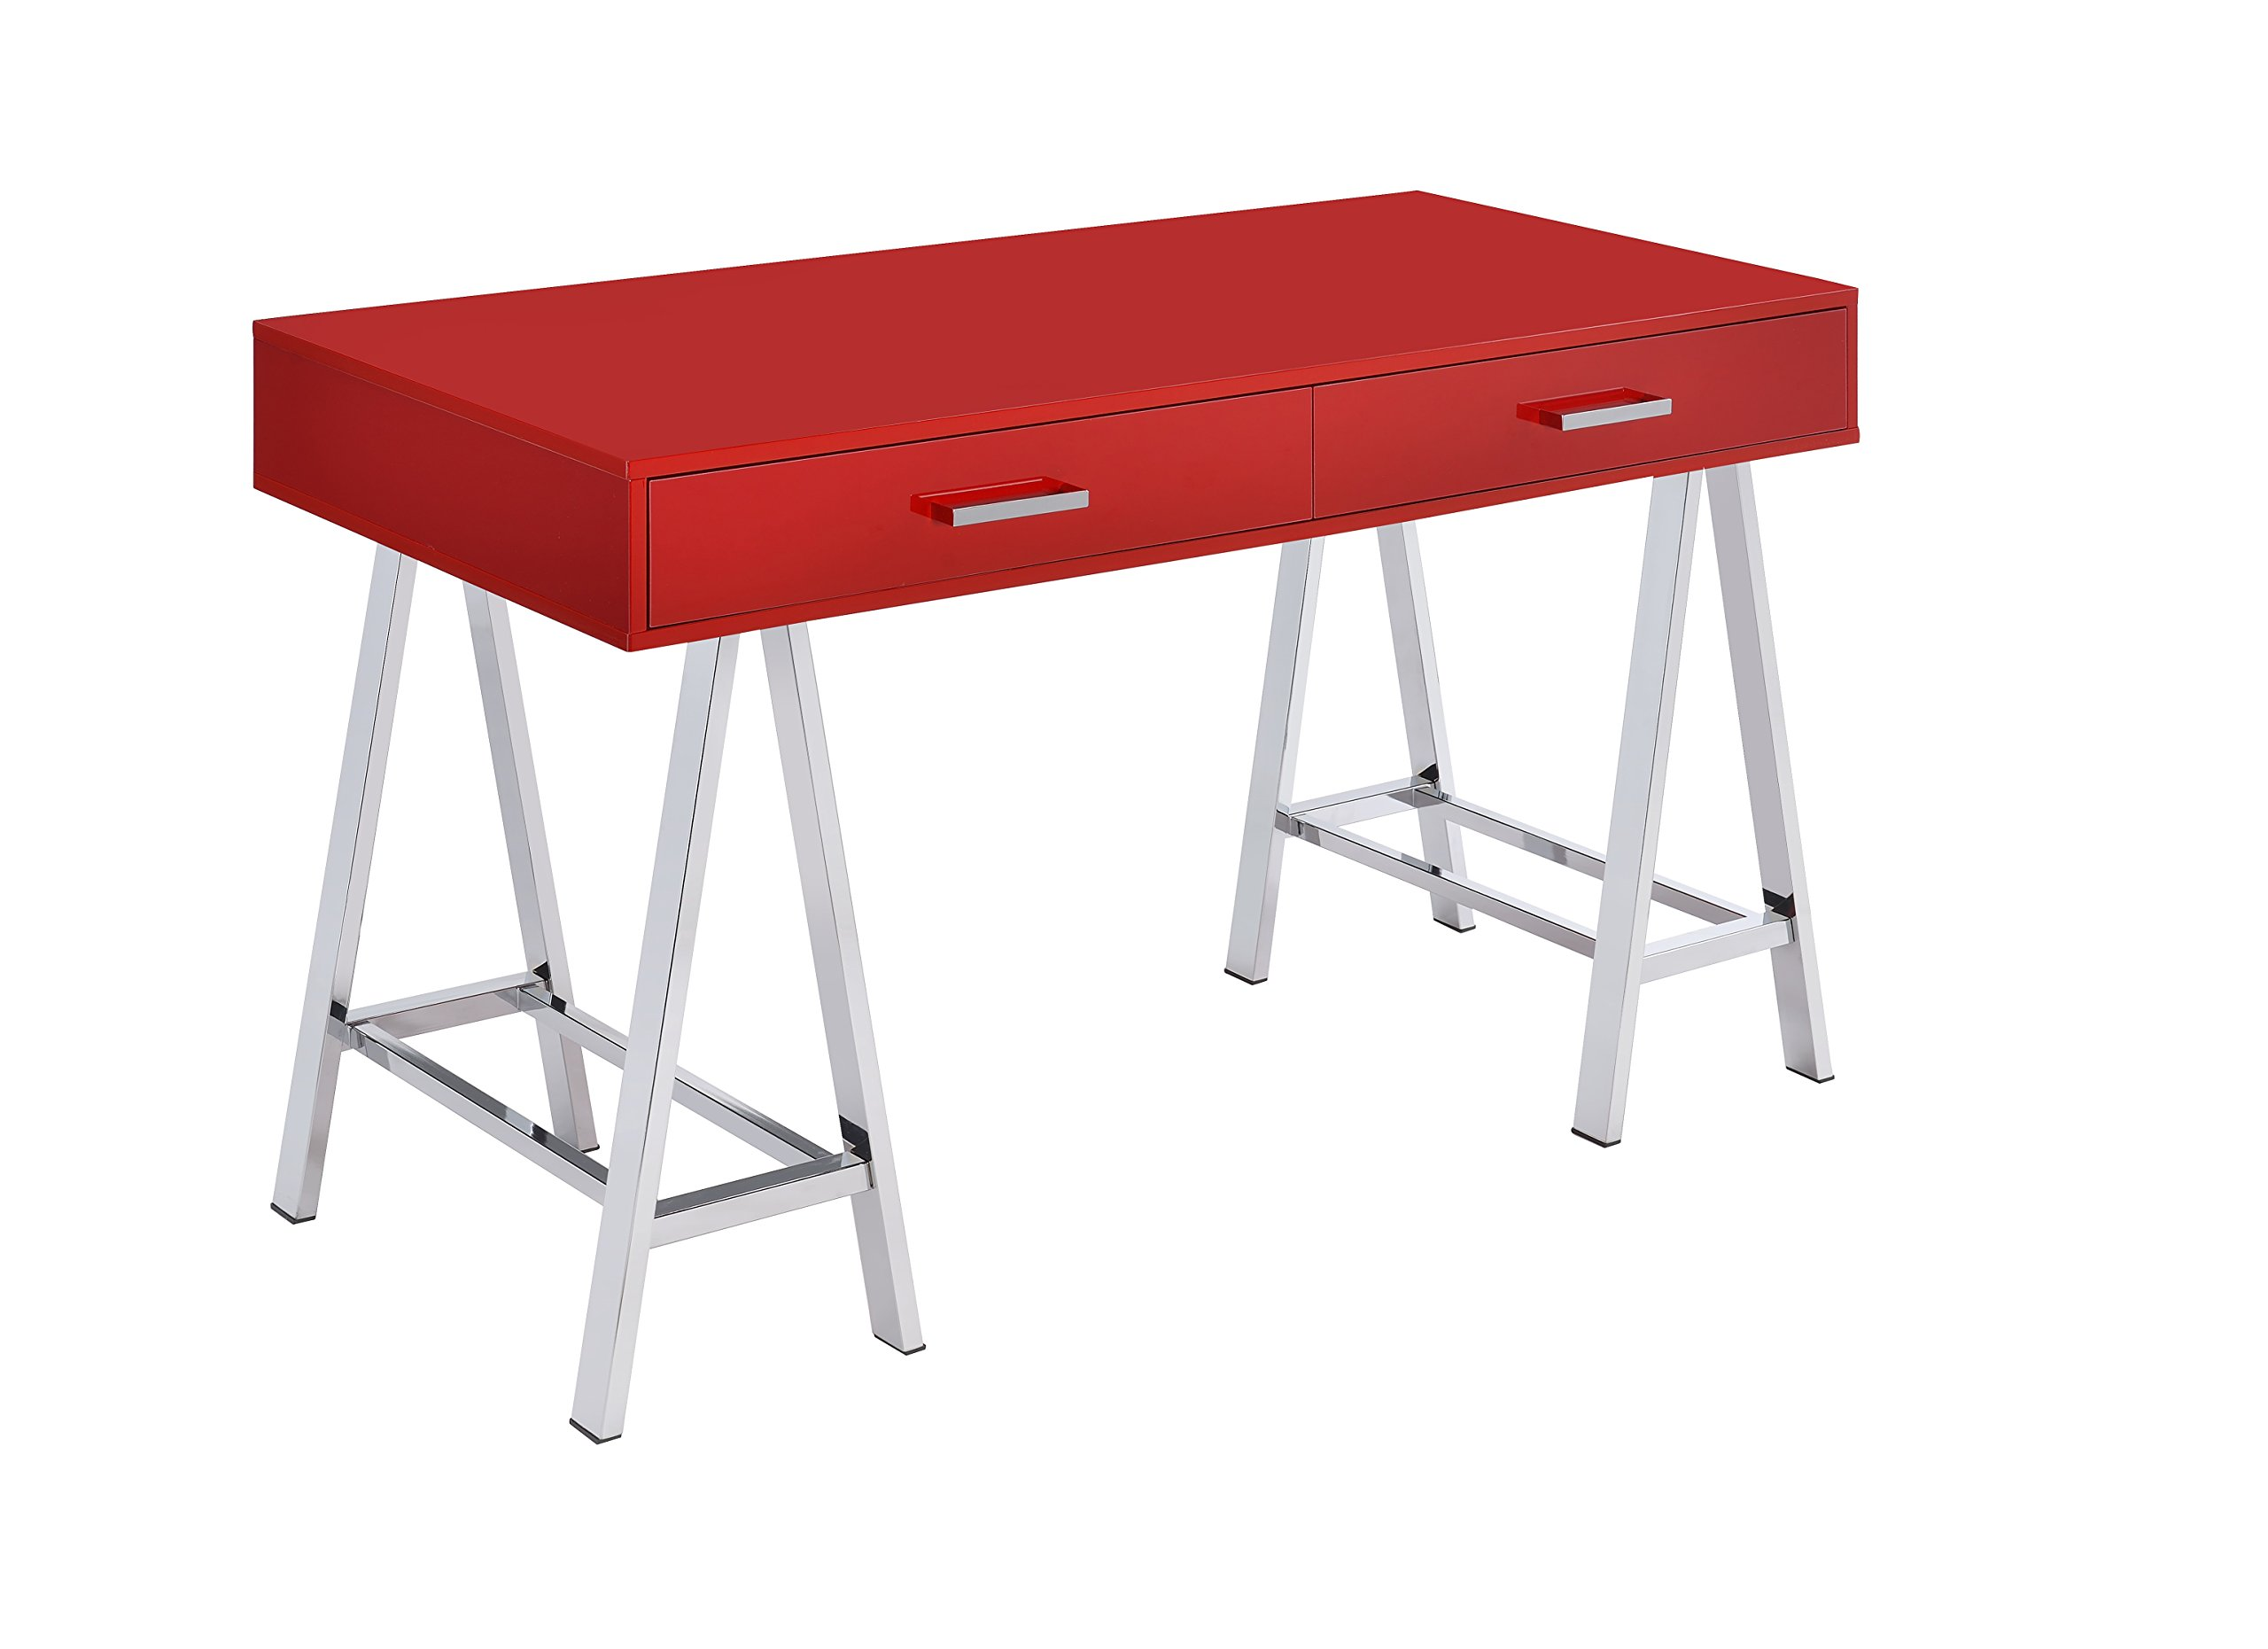 ACME Furniture Acme 92228 Coleen Desk, Red & Chrome, One Size